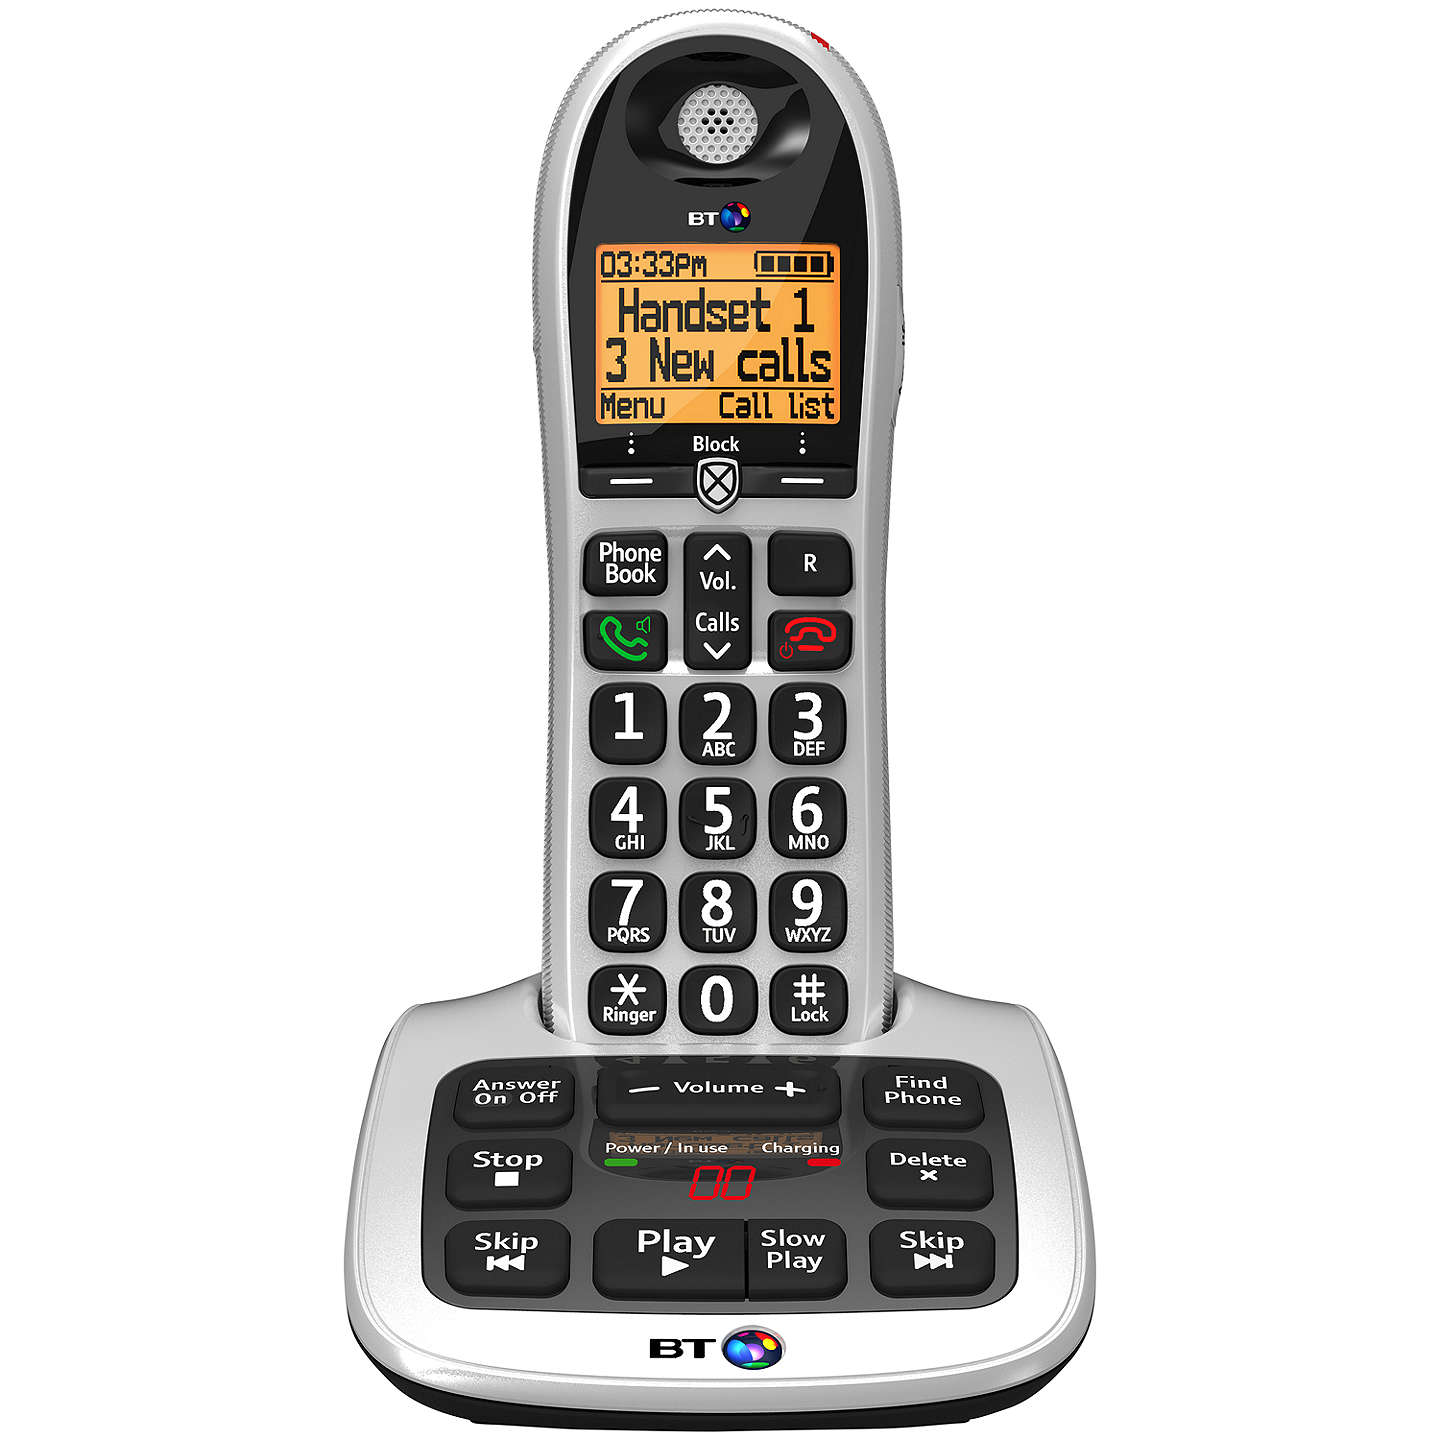 BuyBT 4600 Big Button Digital Cordless Phone With Advanced Call Blocking & Answering Machine, Single DECT Online at johnlewis.com